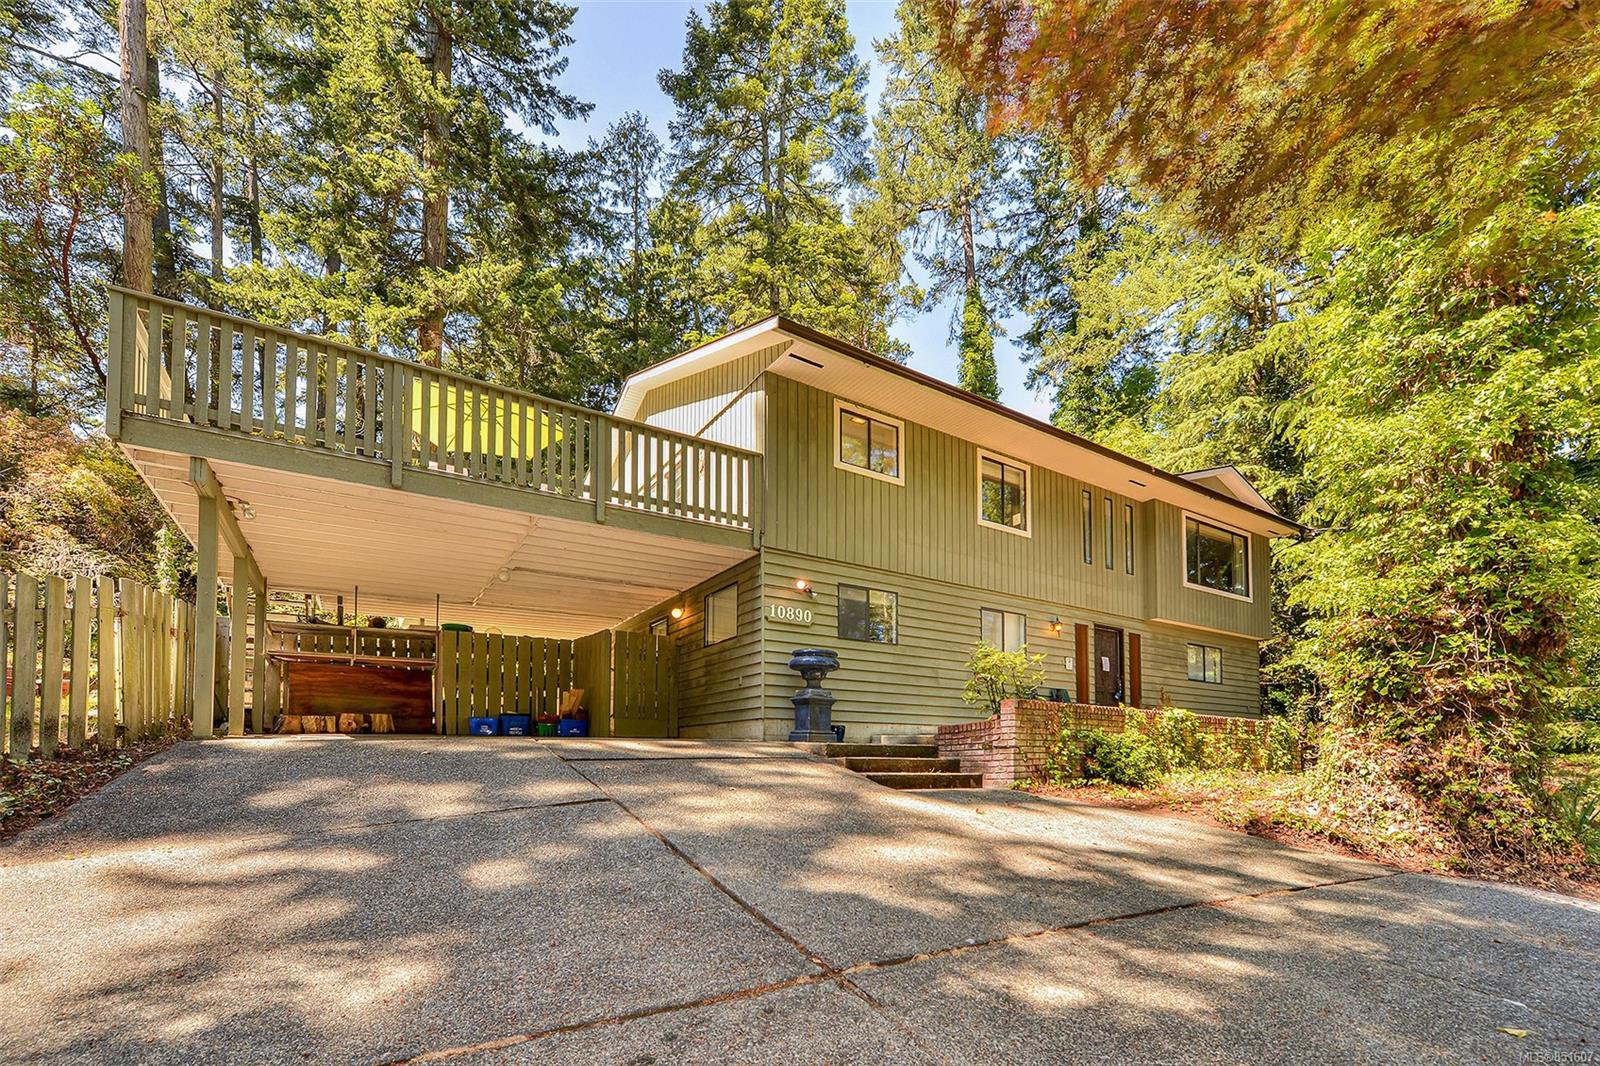 Main Photo: 10890 Fernie Wynd Rd in : NS Curteis Point Single Family Detached for sale (North Saanich)  : MLS®# 851607